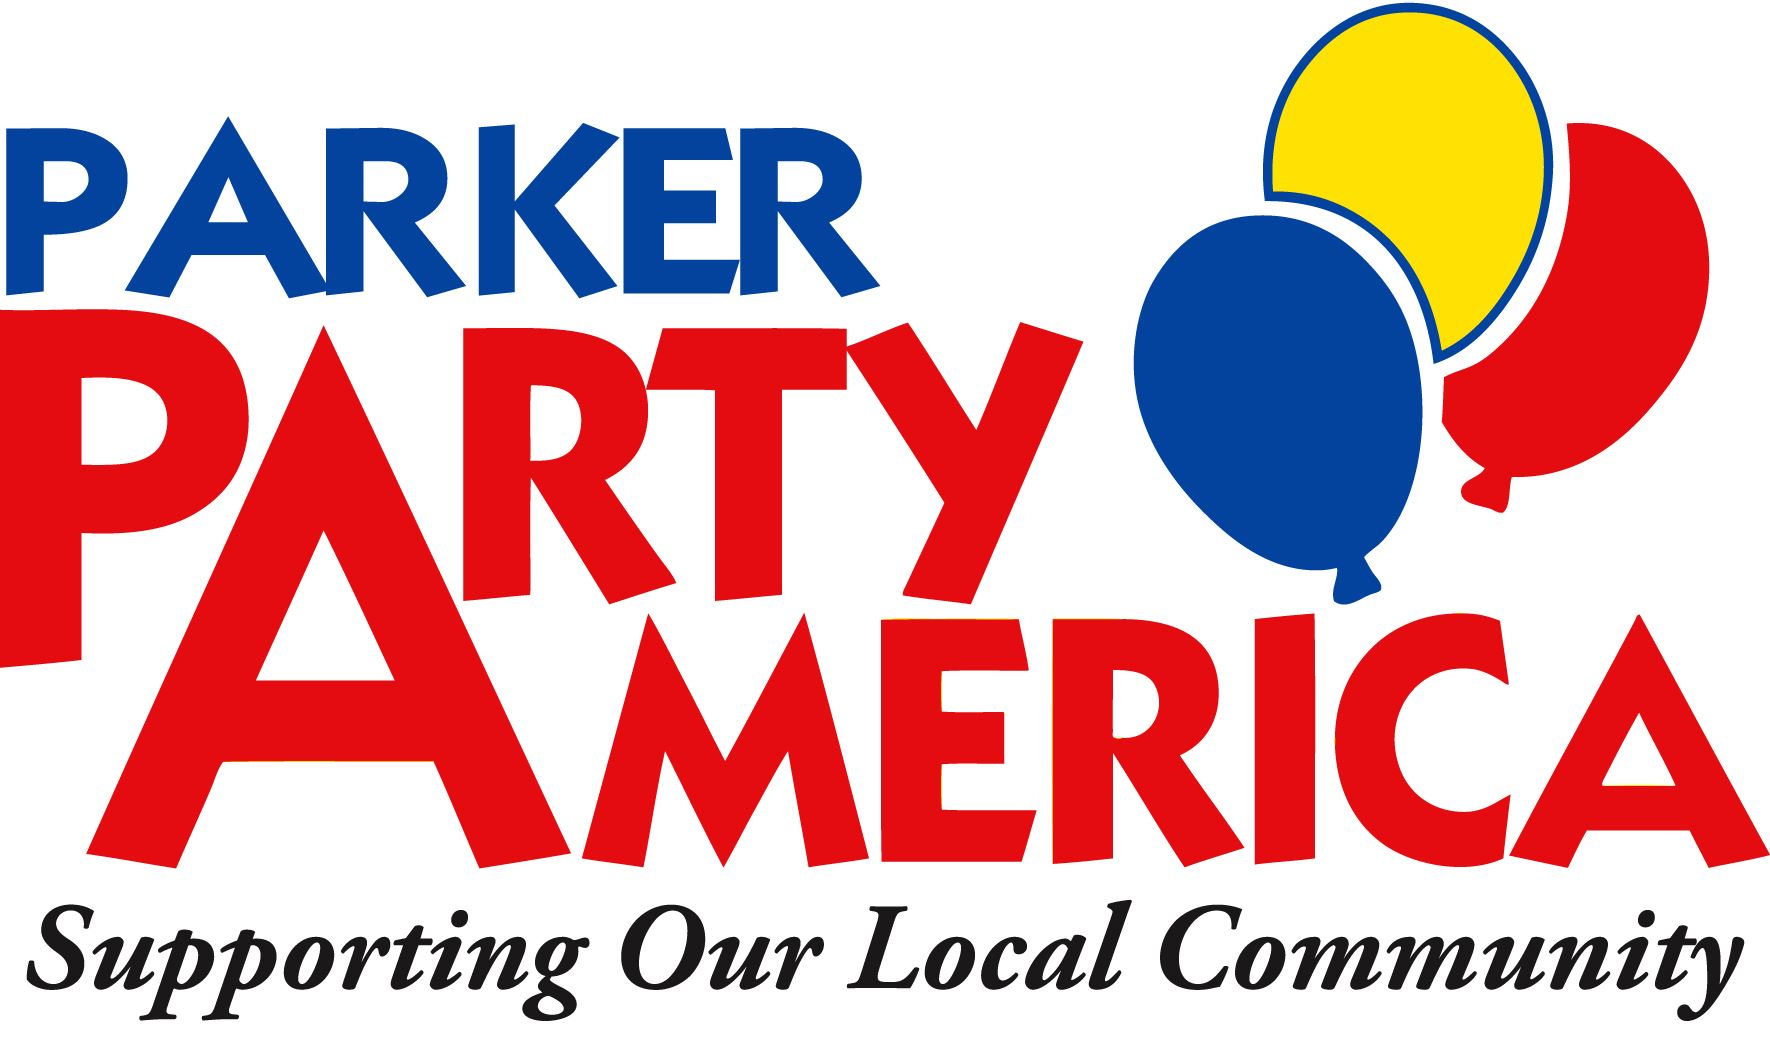 PARTY_AMERICA_LOGO_COMMUNIT Opens in new window